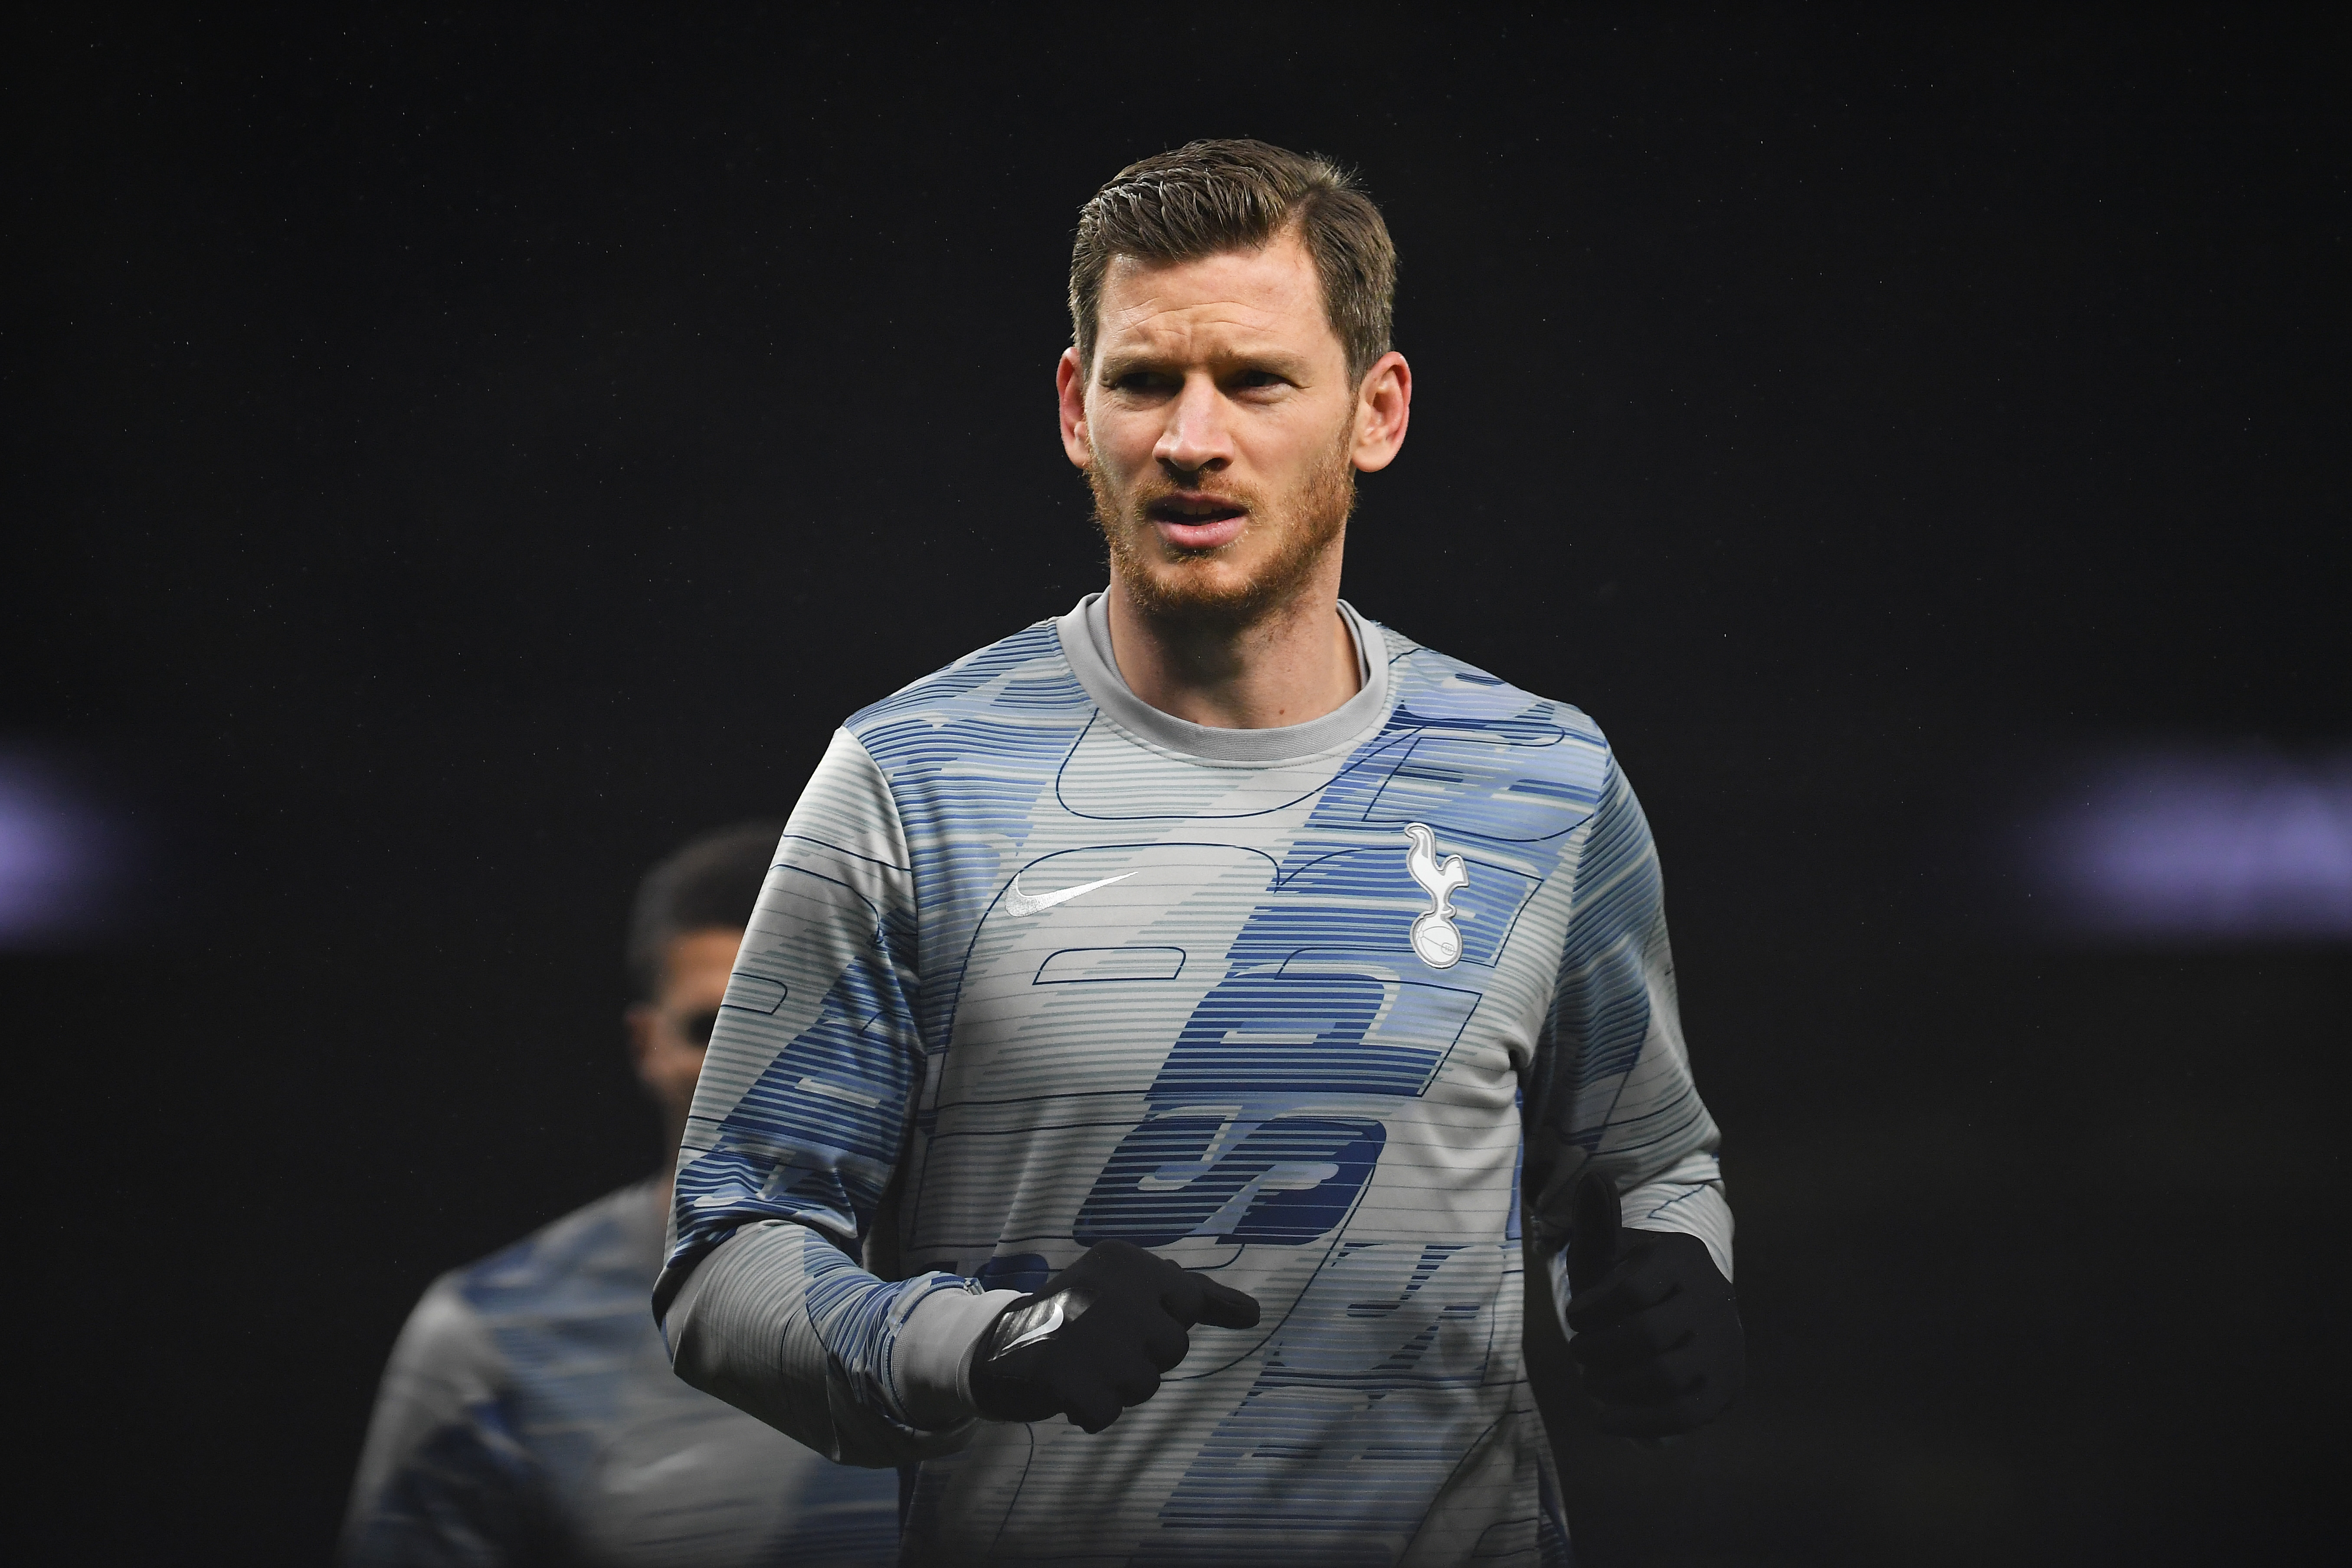 Manchester City are keeping tabs on Tottenham's Jan Vertonghen - A good riddance for Spurs?